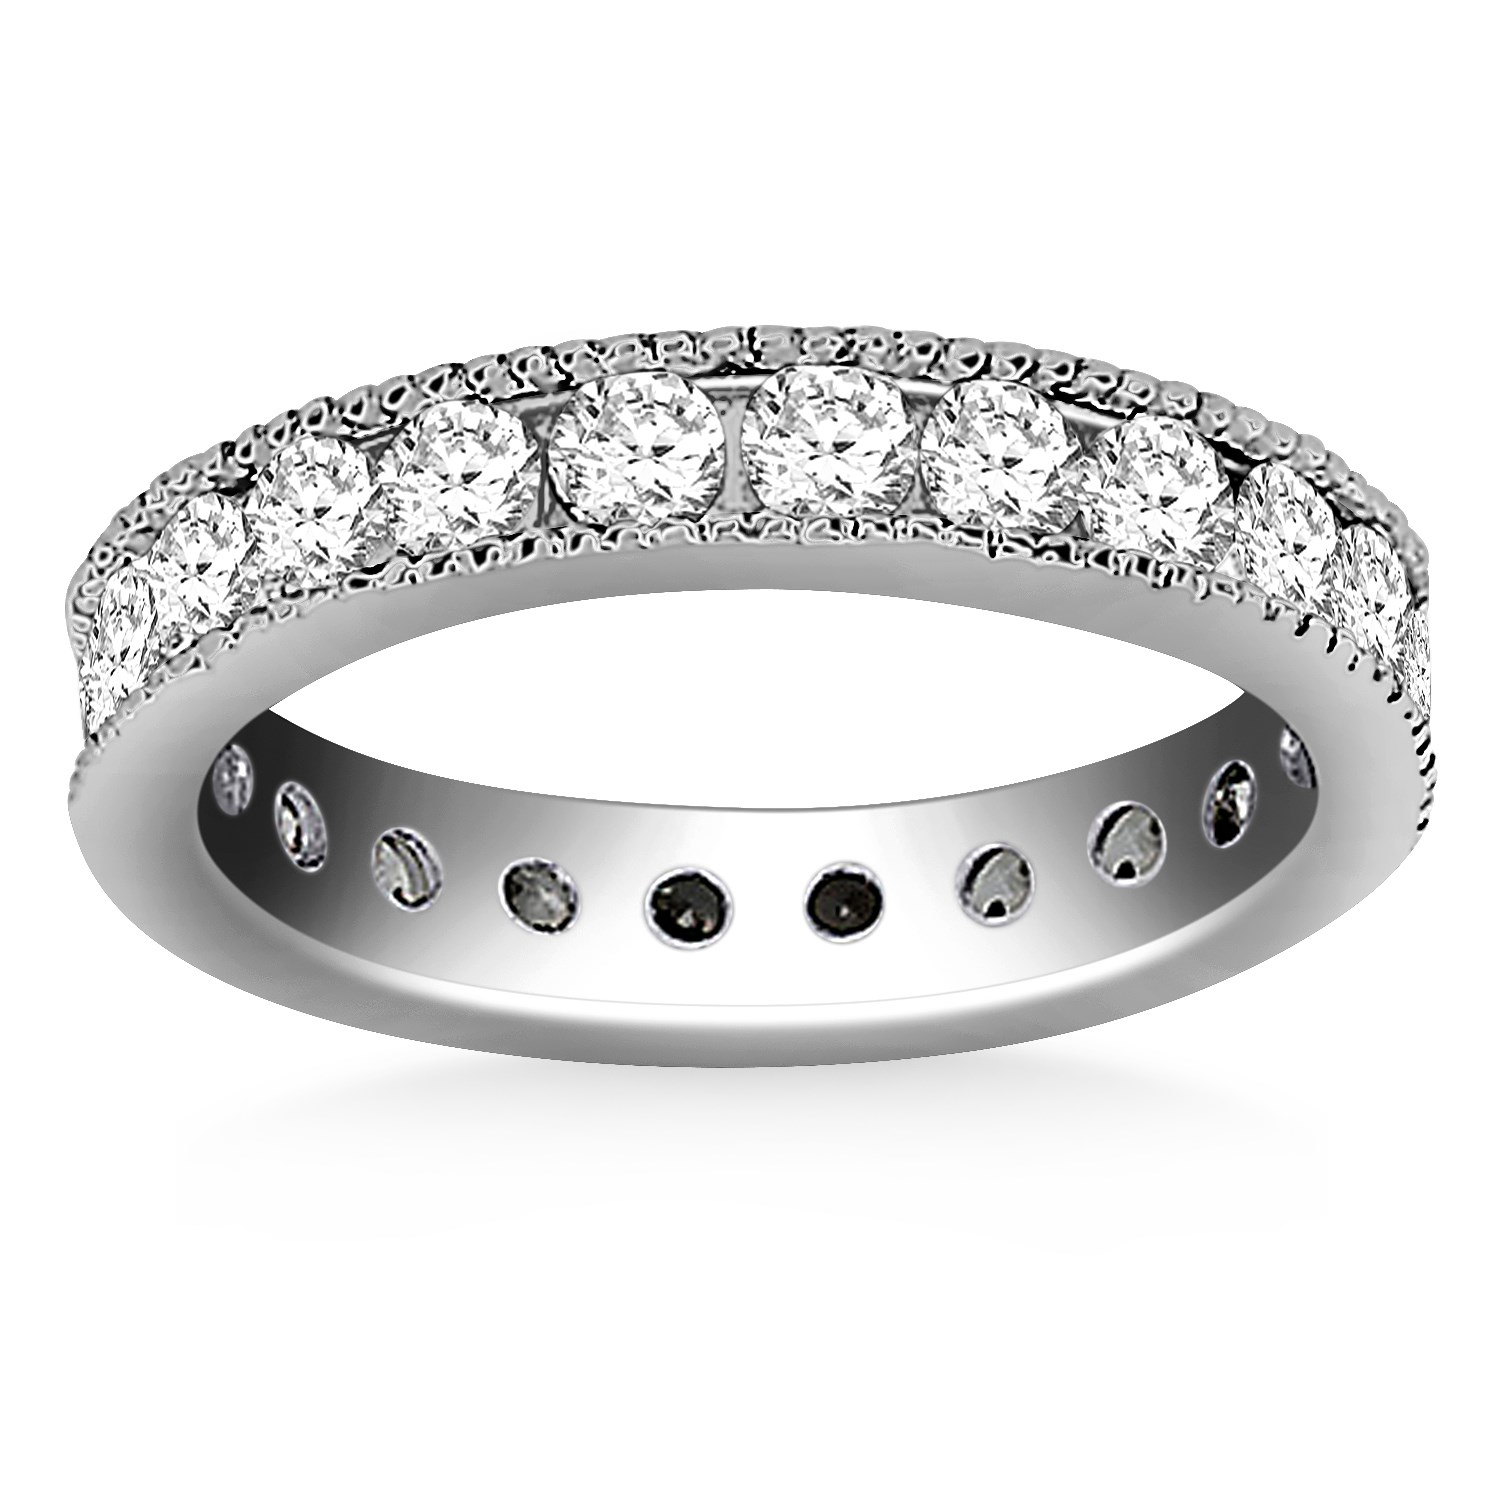 14K White Gold Antique Channel Set Round Diamond Eternity Ring Size 8 by Mia Diamonds